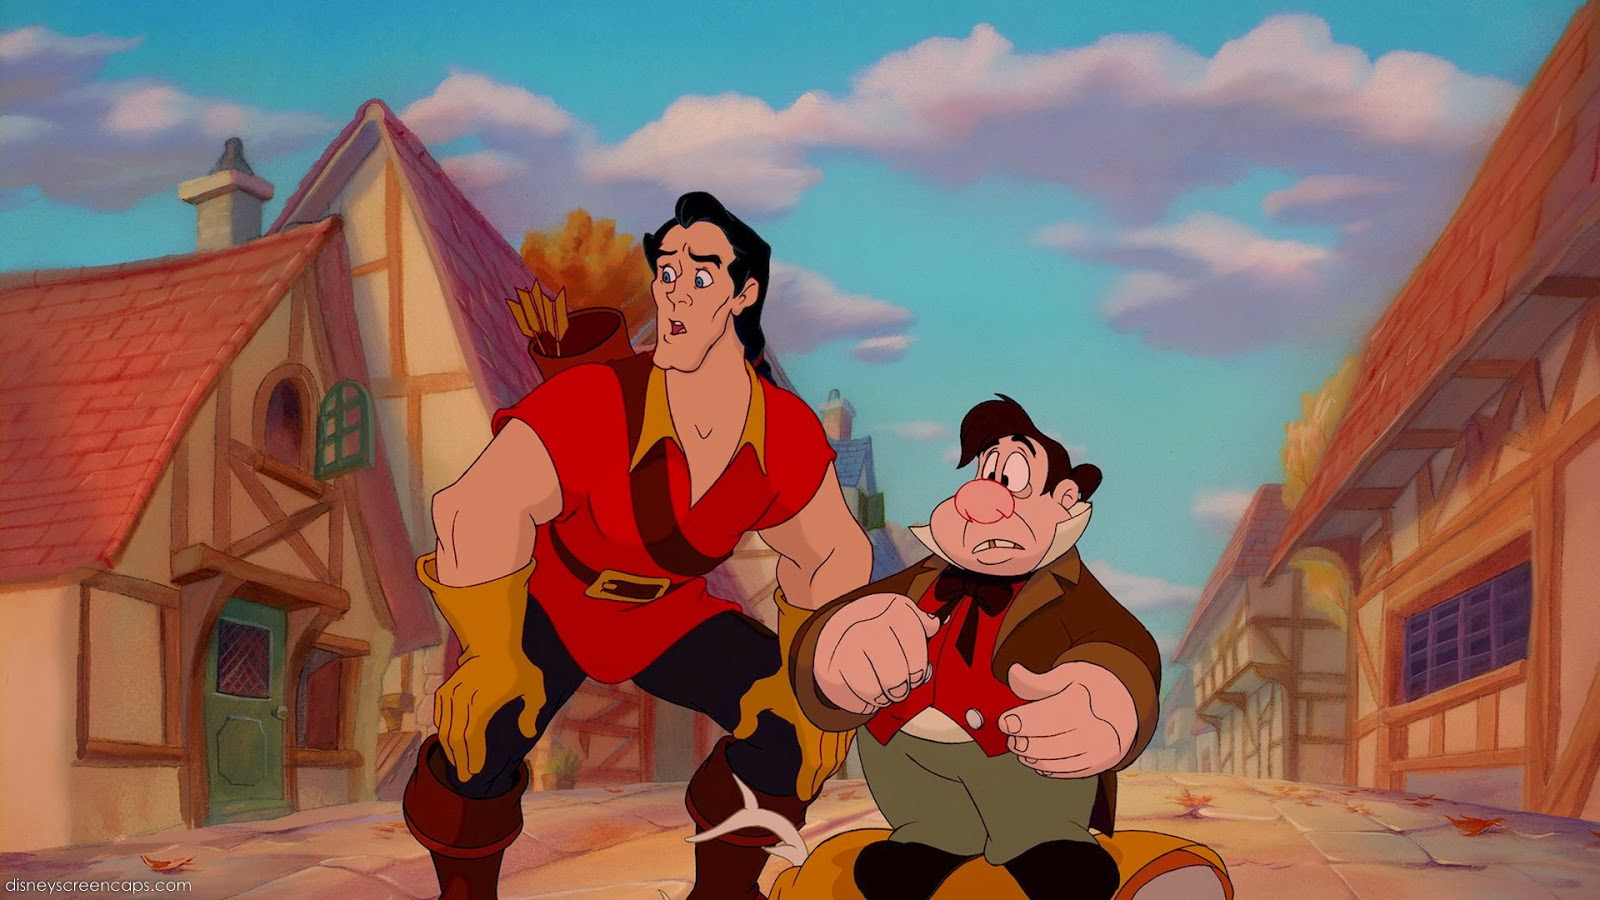 Analyzing The Disney Villains Gaston Beauty And Beast